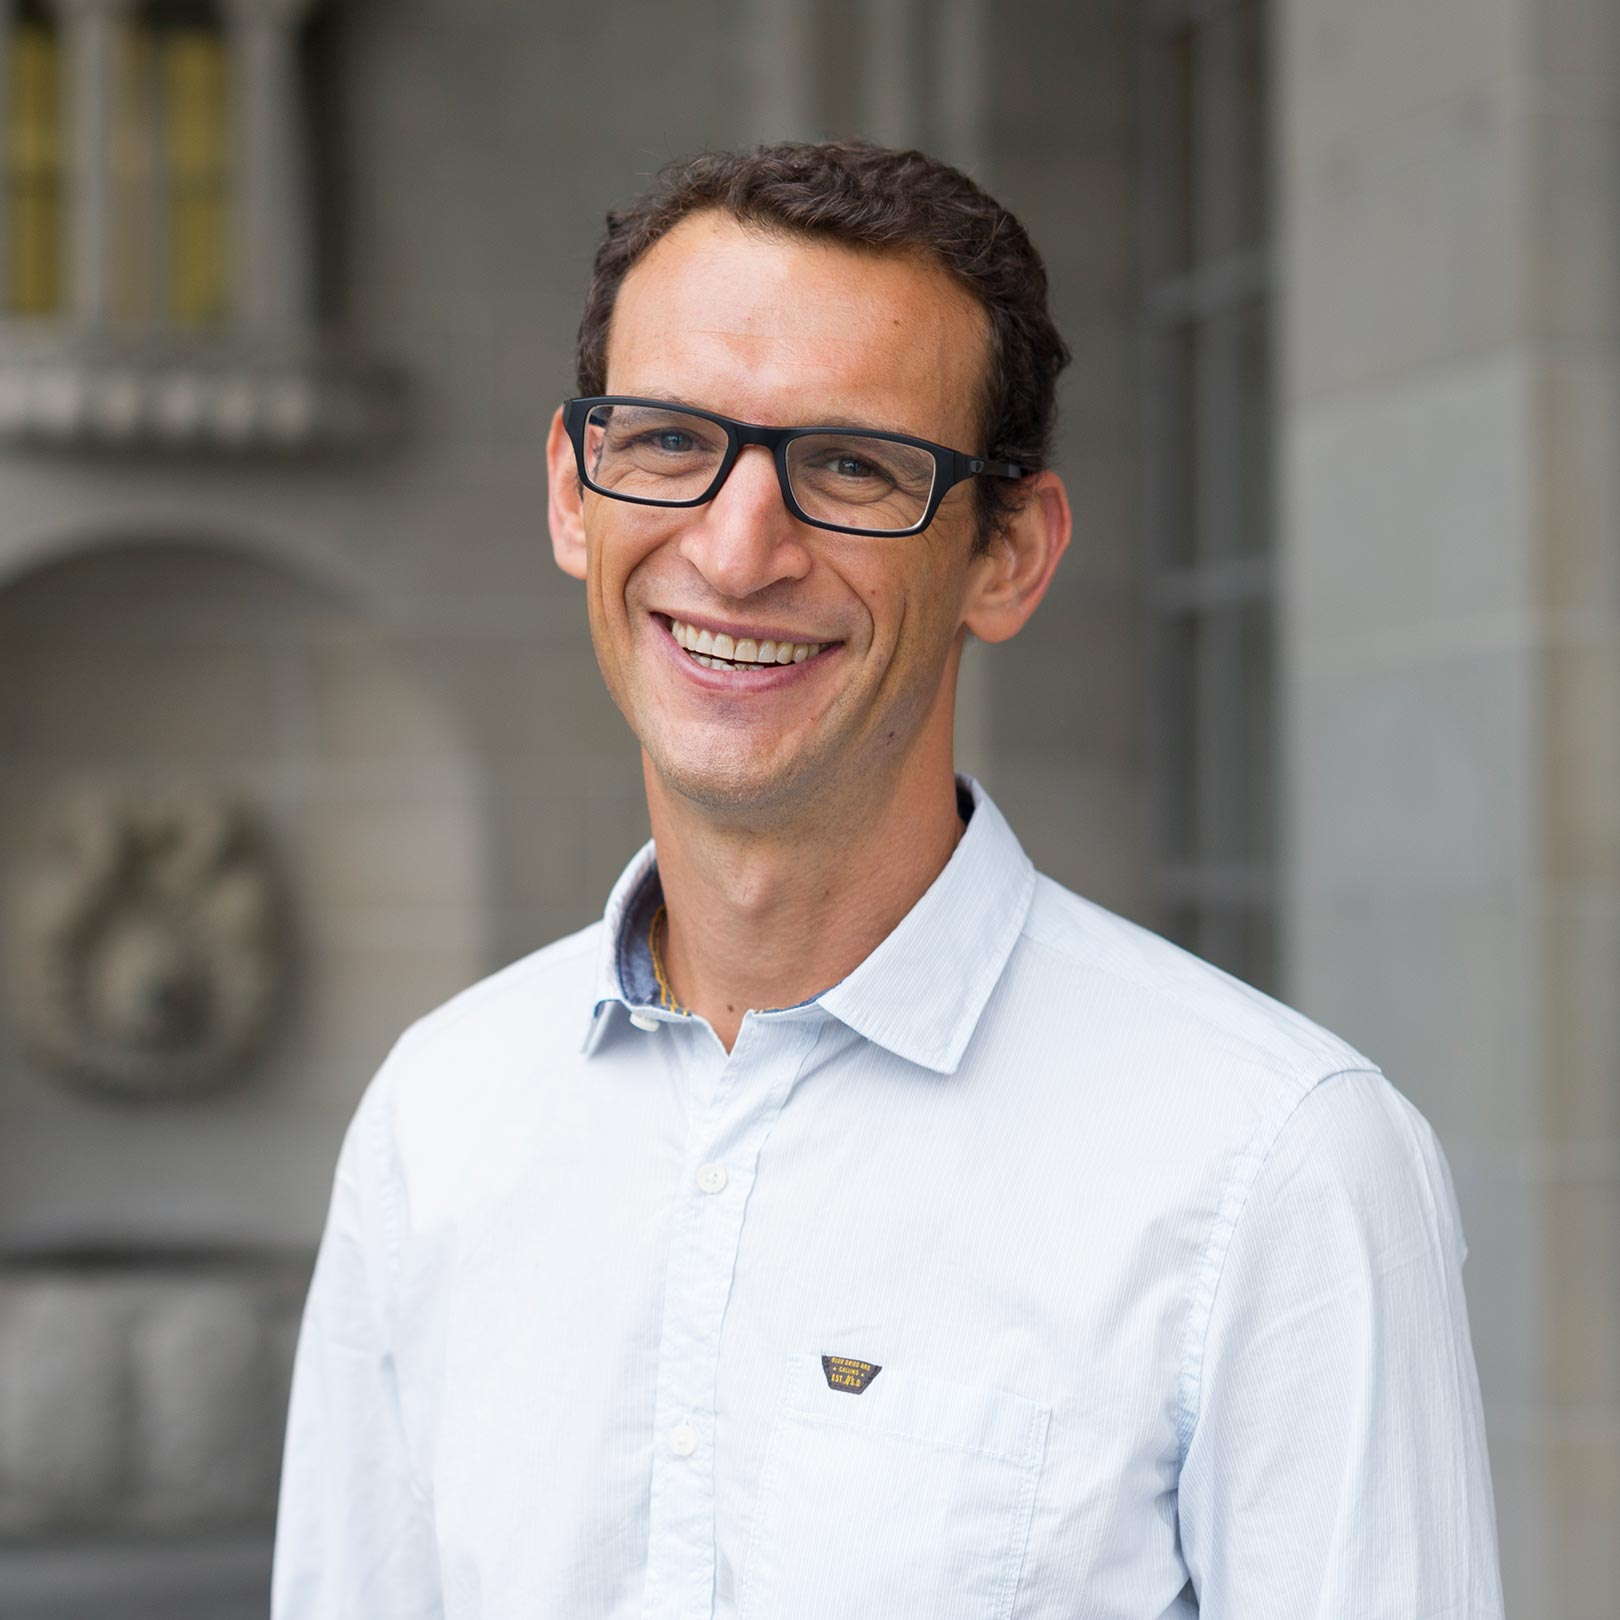 Nir Jaimovich is Professor of Economics, Affiliated Professor at the UBS Center and a Research Fellow at the Centre for Economic Policy Research (CEPR)